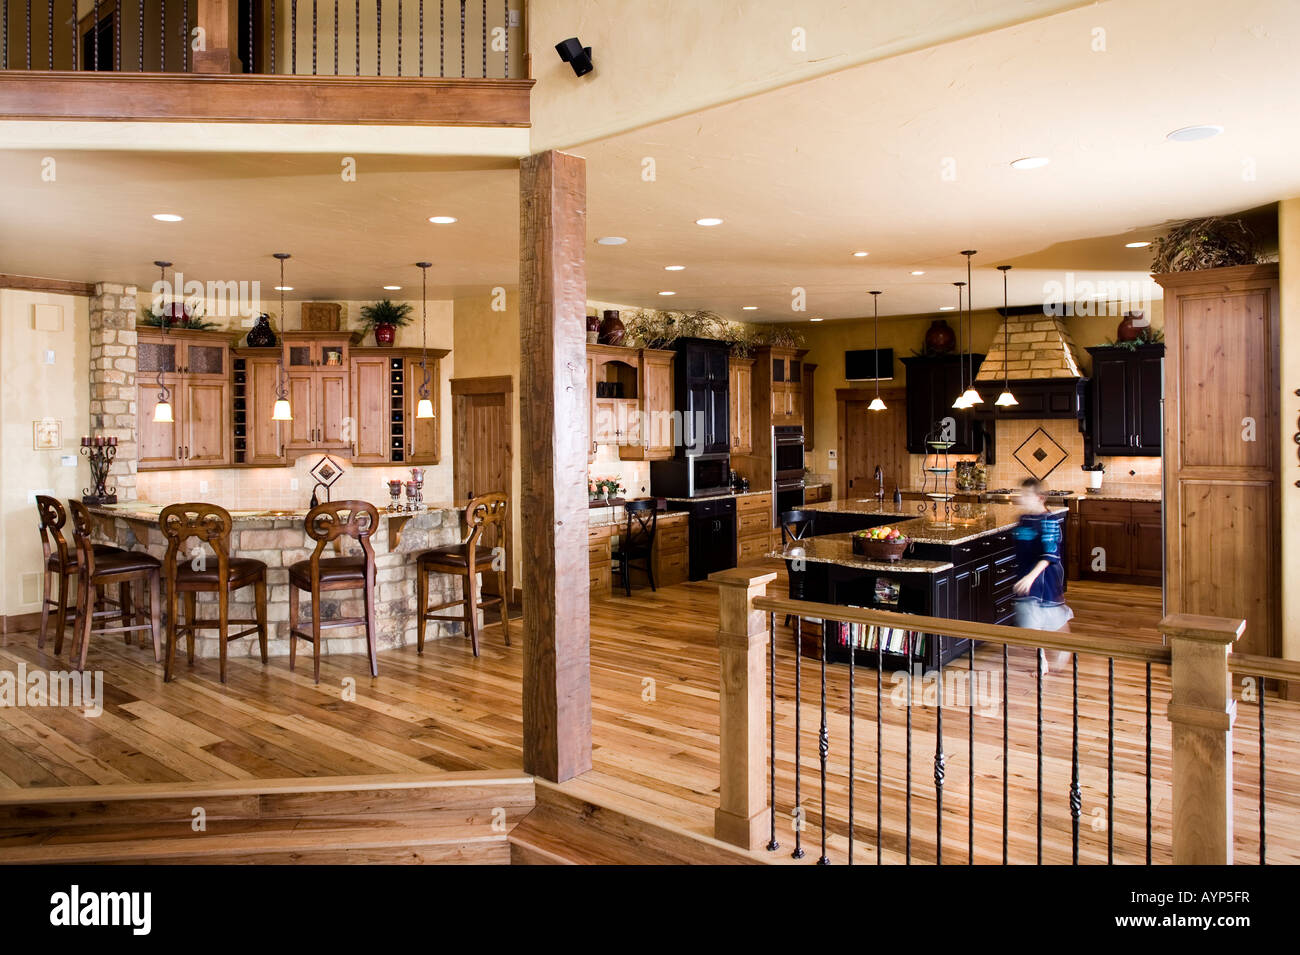 Luxury home interior spacious kitchen 'wood floors' 'breakfast bar' in Fort Collins, Colorado. - Stock Image